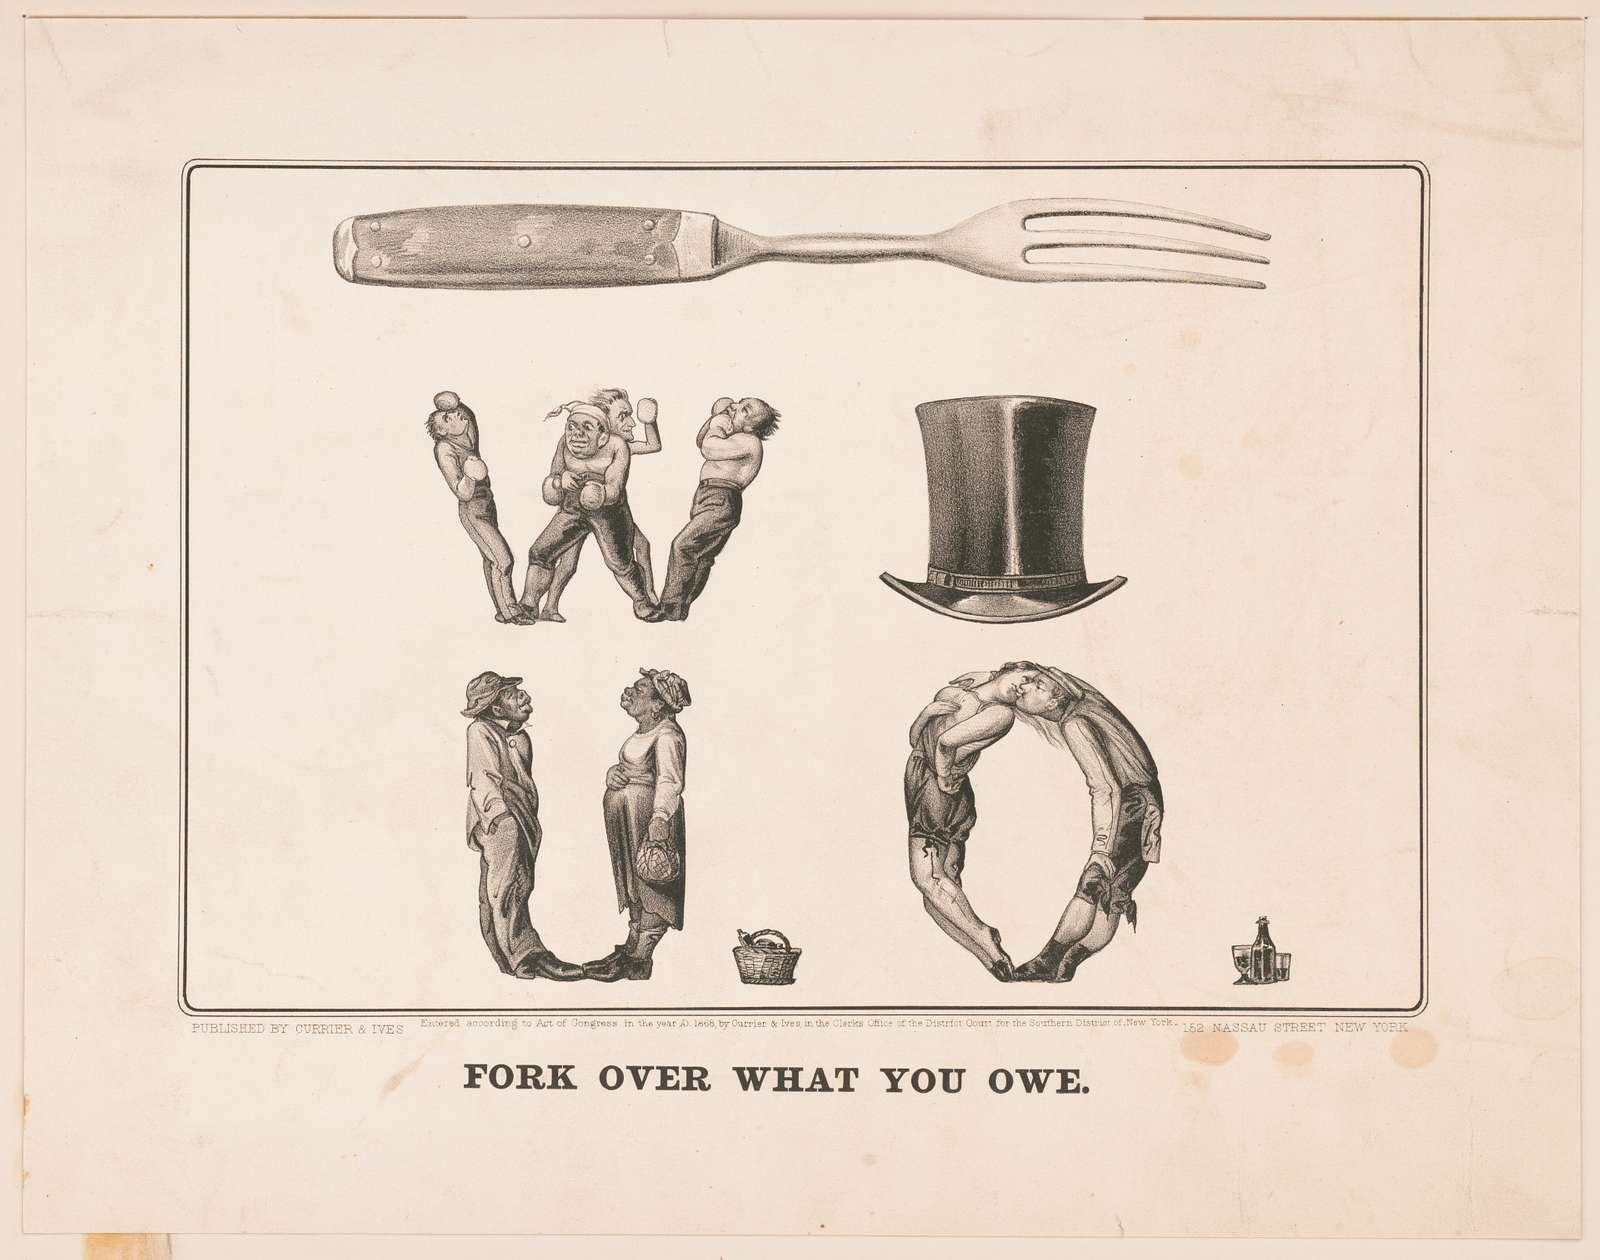 Fork over what you owe